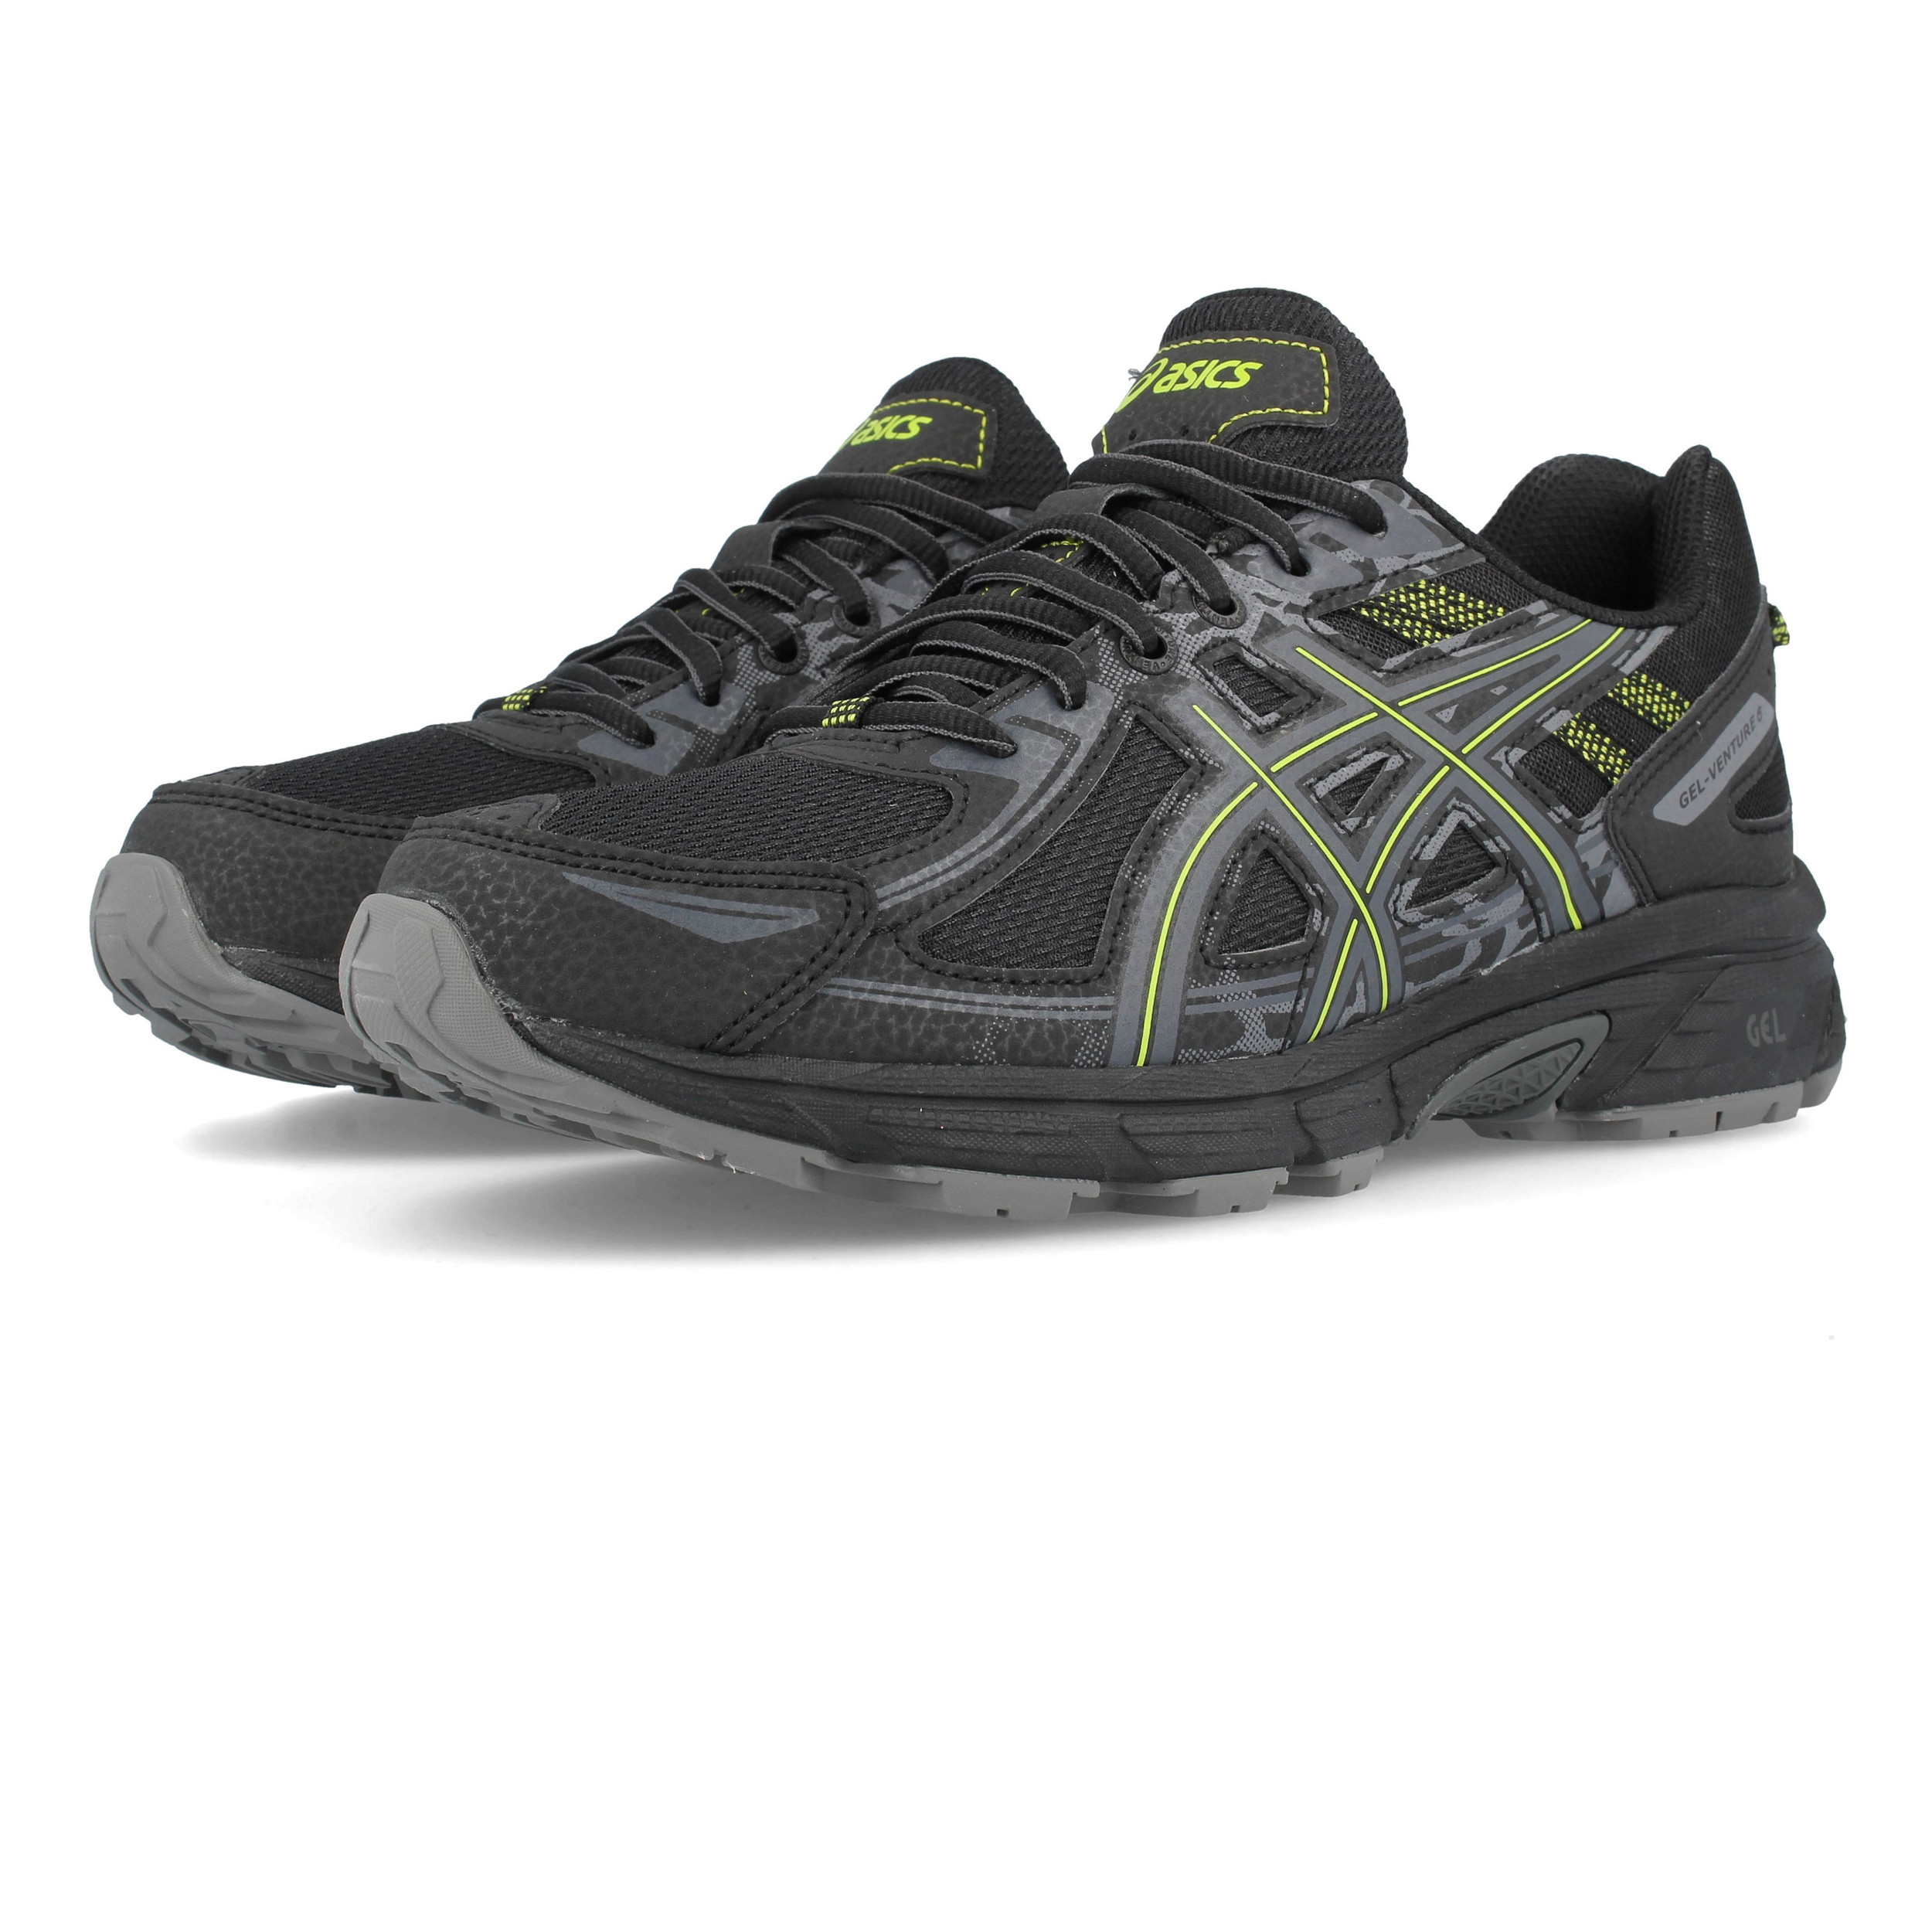 77d708e60ca Details about Asics Mens Gel-Venture 6 Trail Running Shoes Trainers Sneakers  Black Sports